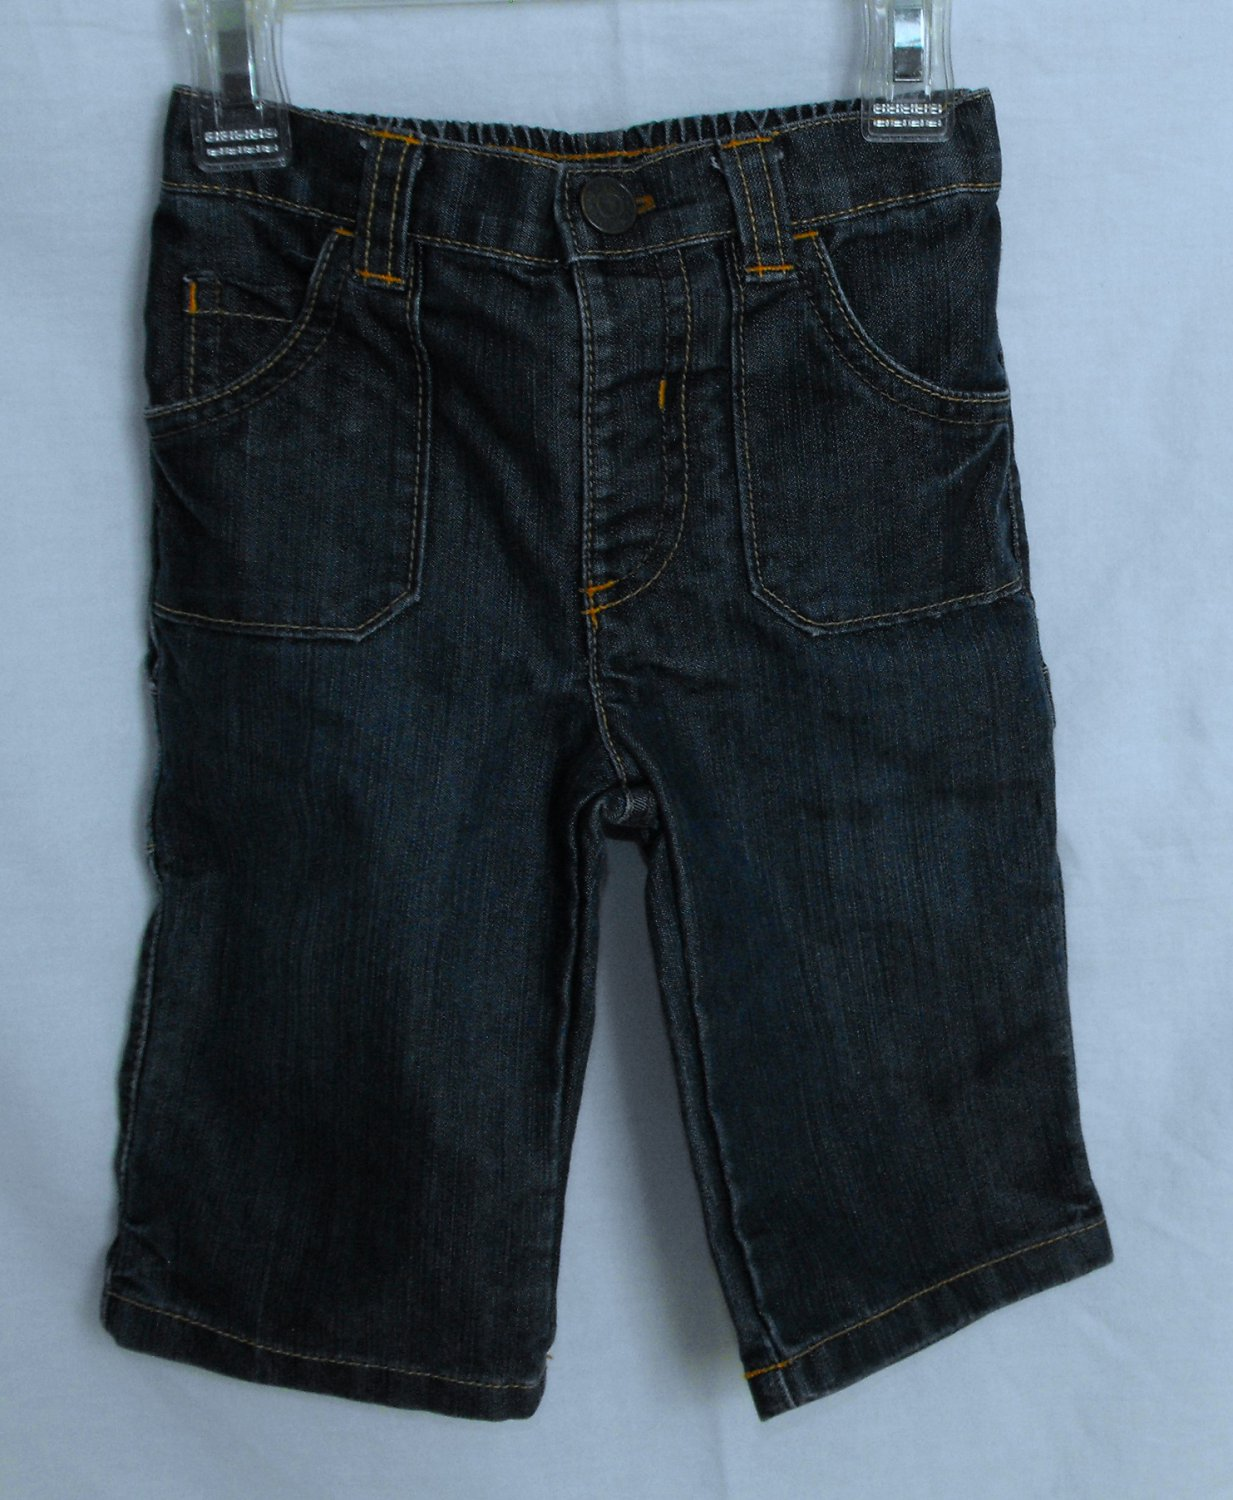 Old Navy Baby Boys Jeans 6 month - 12 Months Carpenter Style